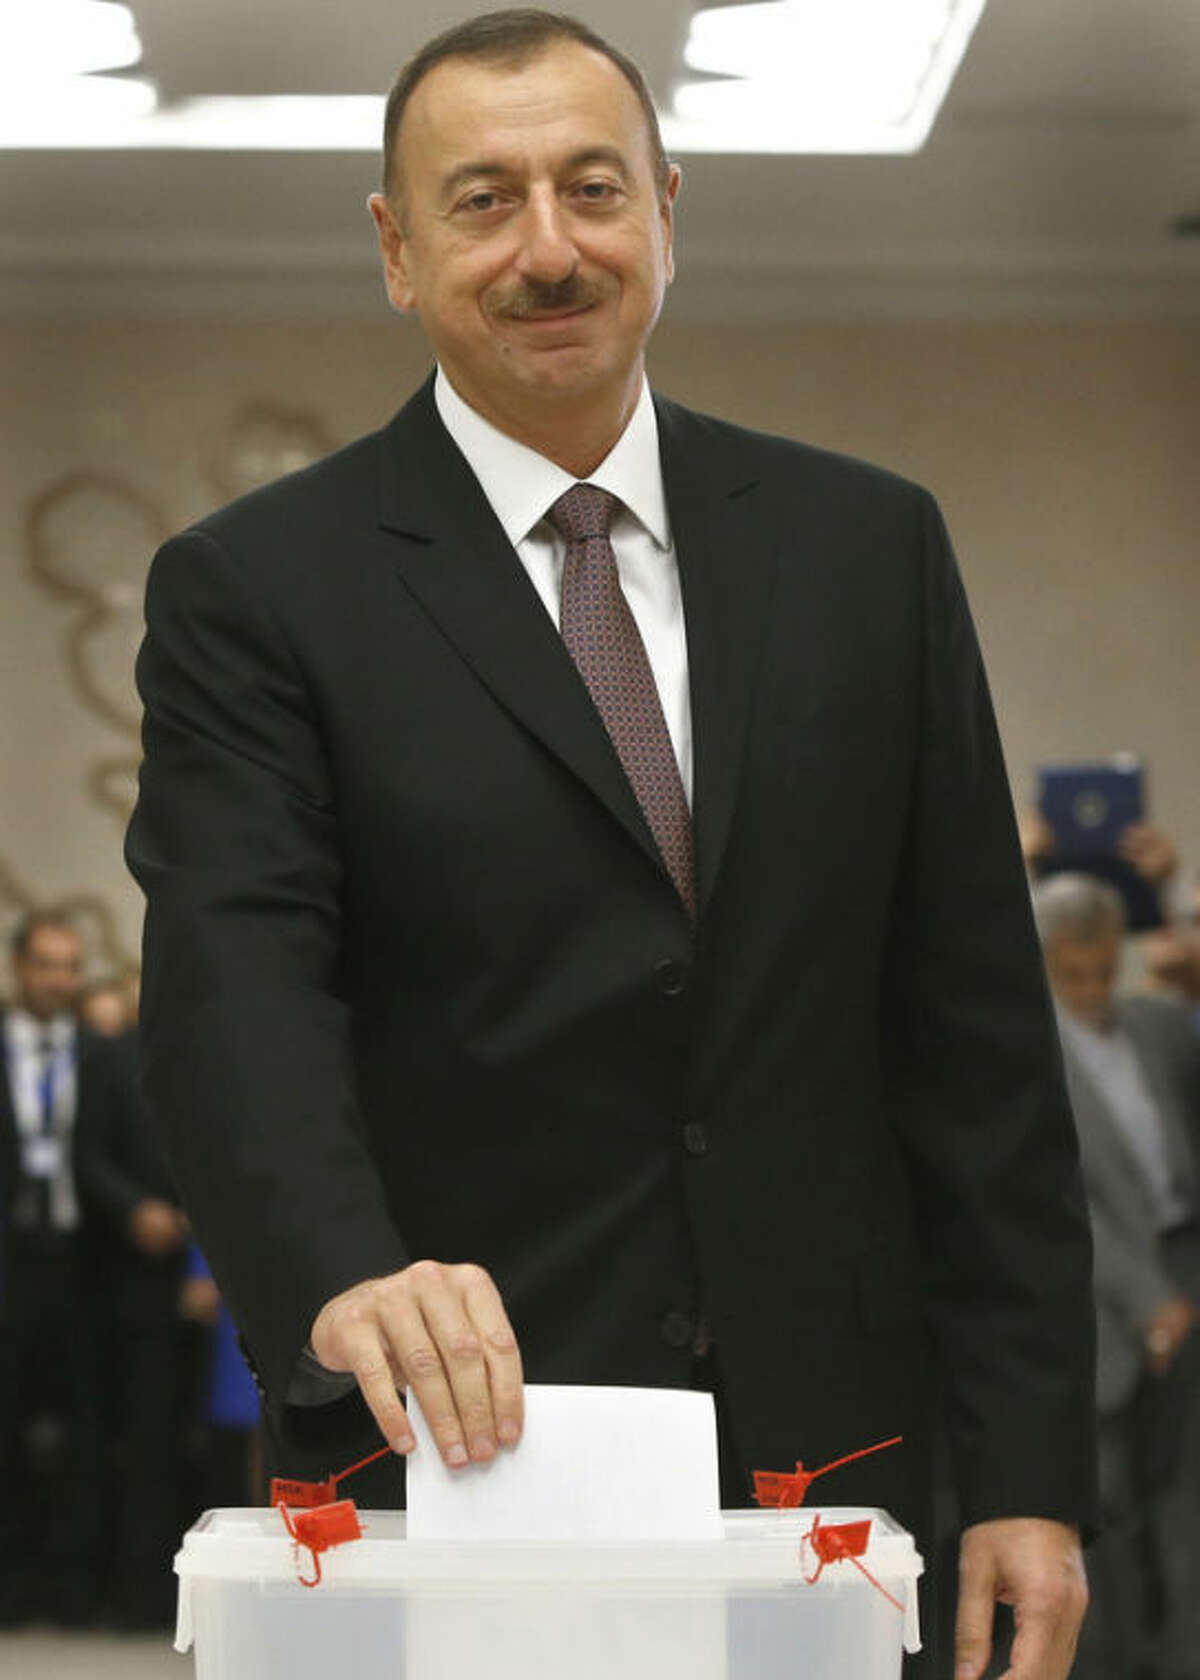 Azerbaijan President Ilham Aliyev casts his ballot paper during the voting at a polling station in Baku, Azerbaijan, Wednesday, Oct. 9, 2013. Presidential election begins in the oil-rich Caspian nation. (AP Photo/Sergei Grits)